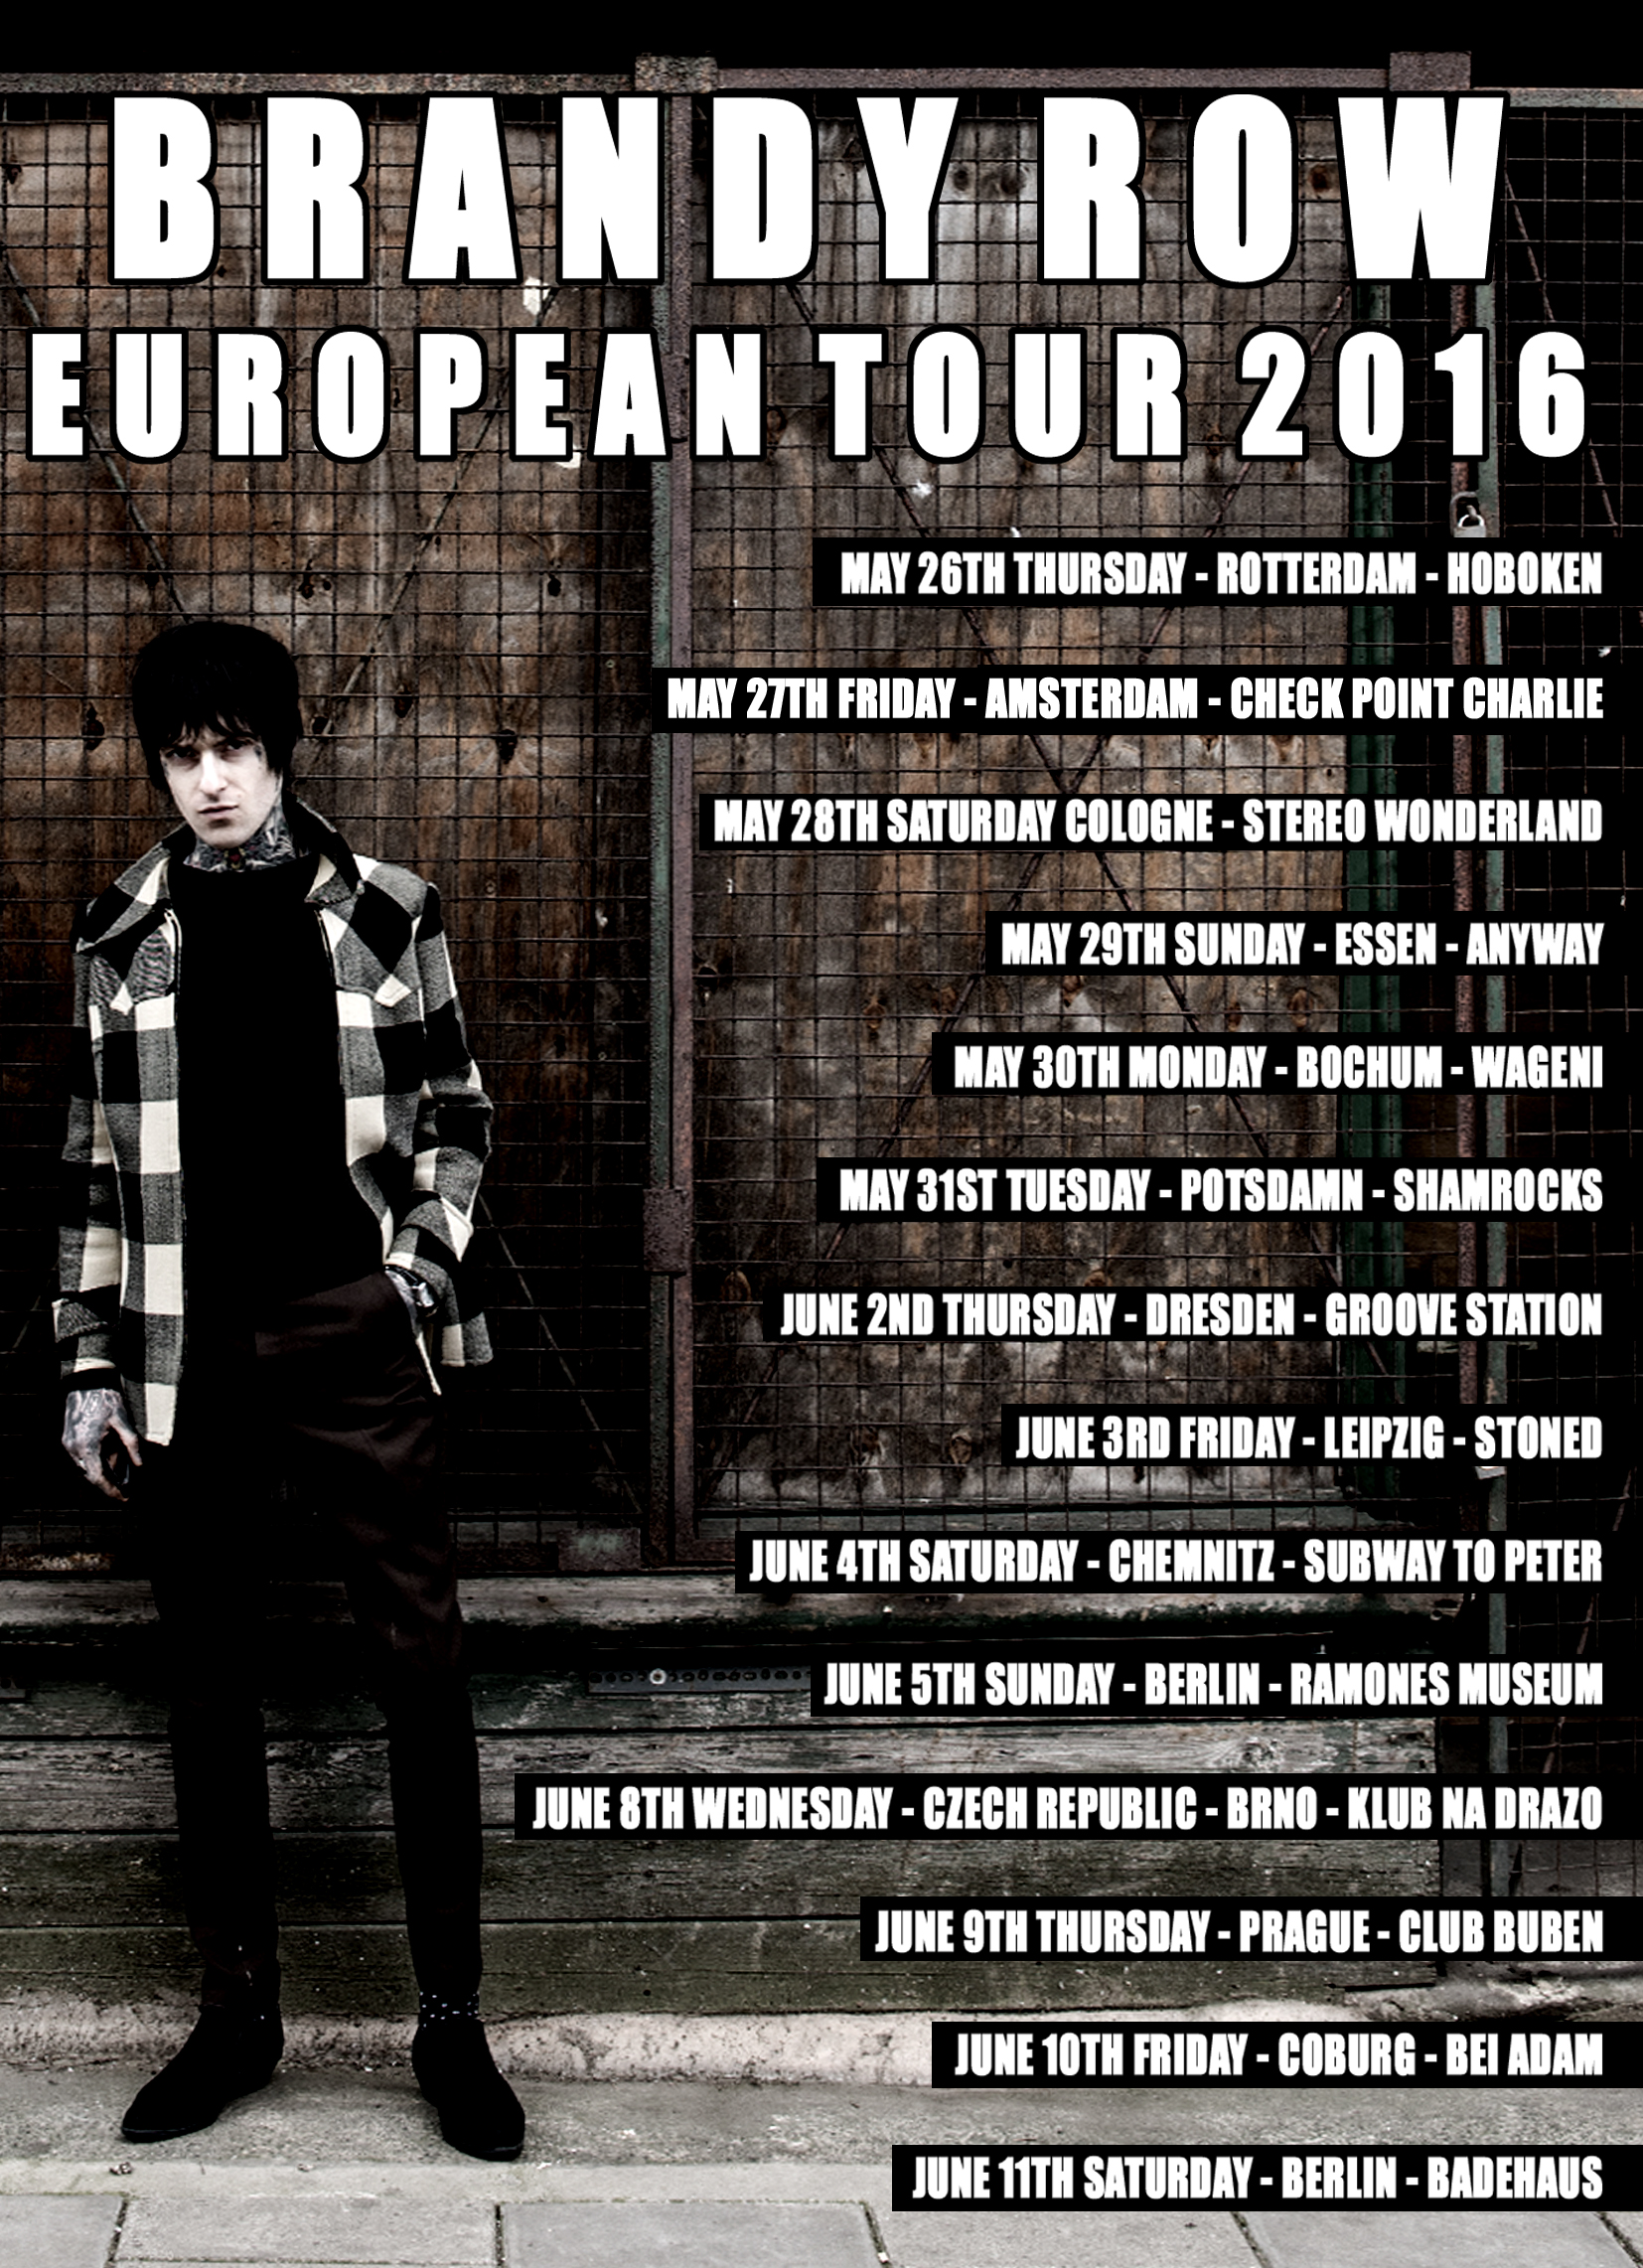 The final date of the European Tour has now been confirmed – The 27th In Amsterdam @ Checkpoint Charlie